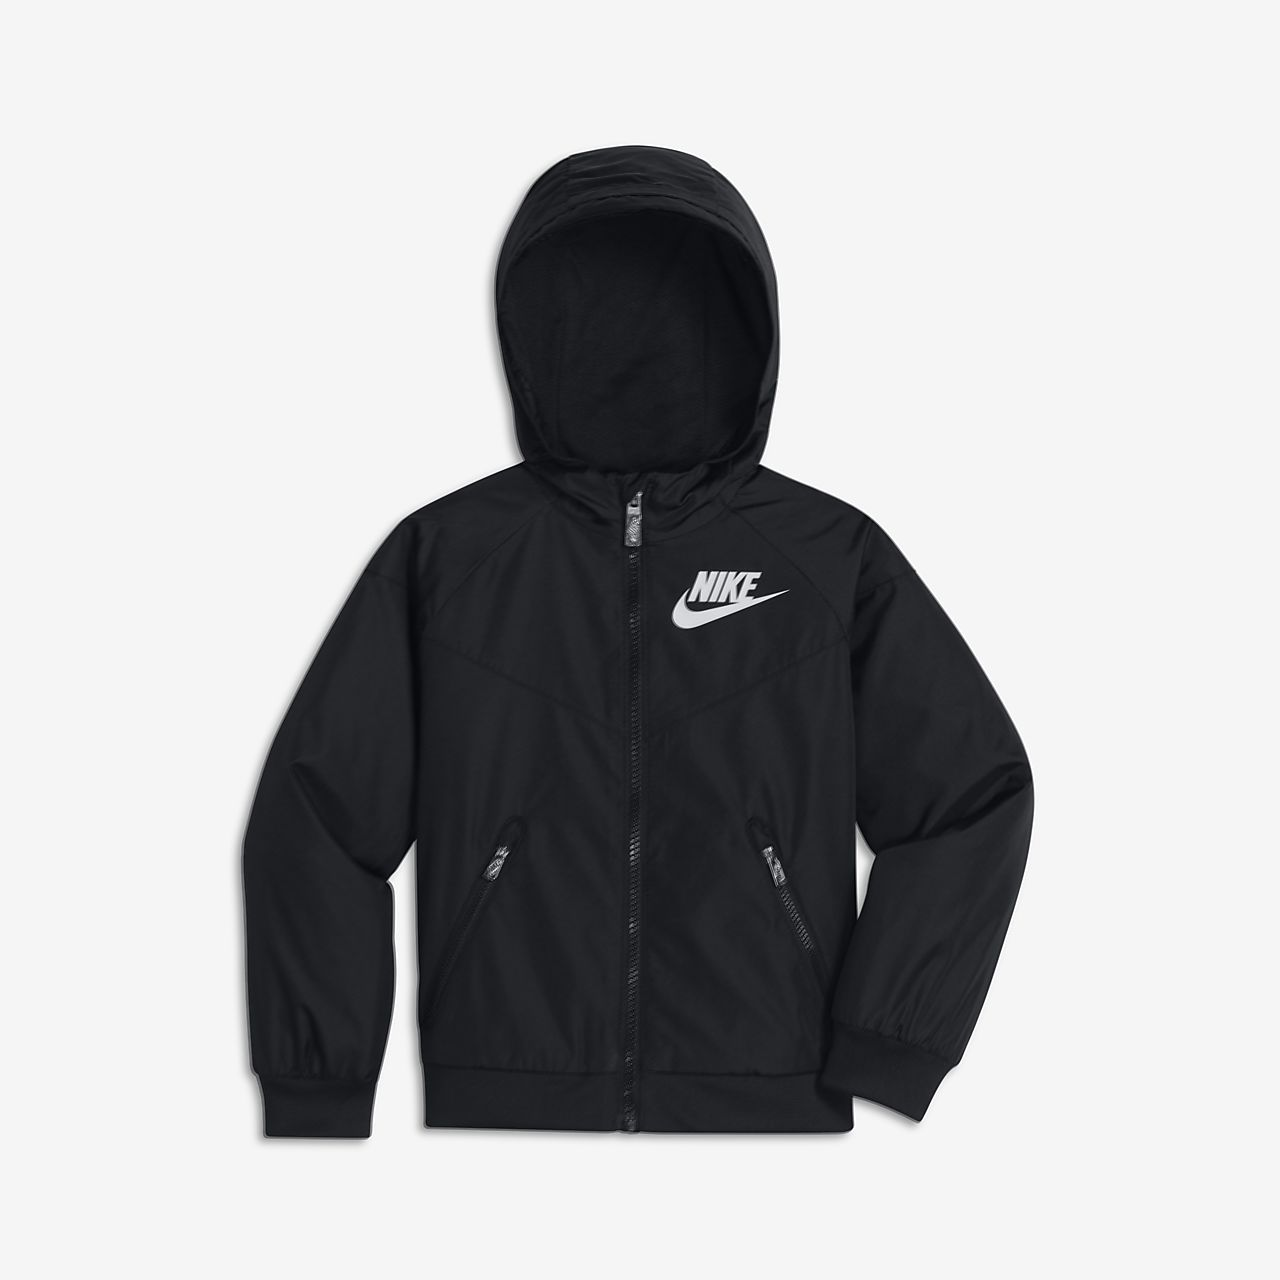 Nike windrunner jacket in printed black and white